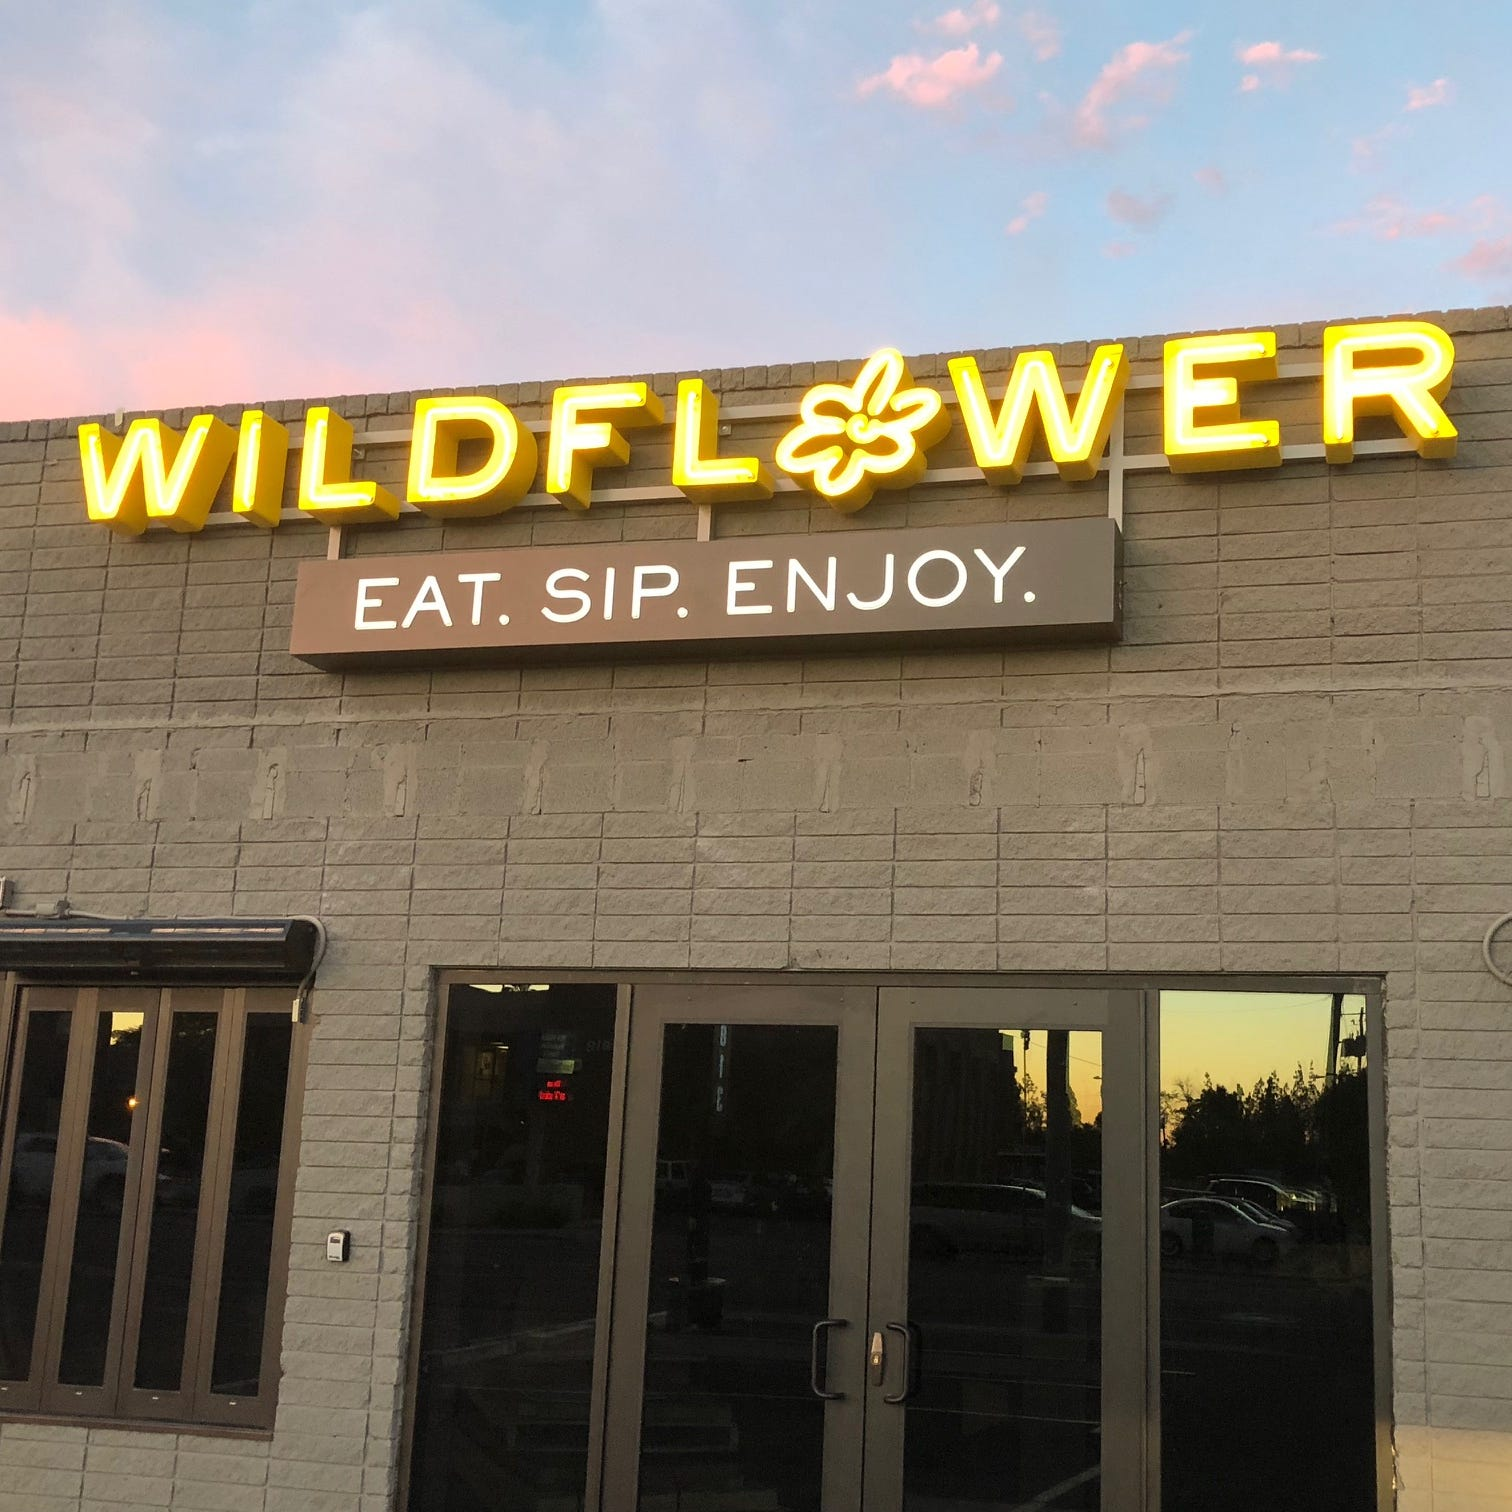 Wildflower opens in central Phoenix's restaurant row on Sept. 11